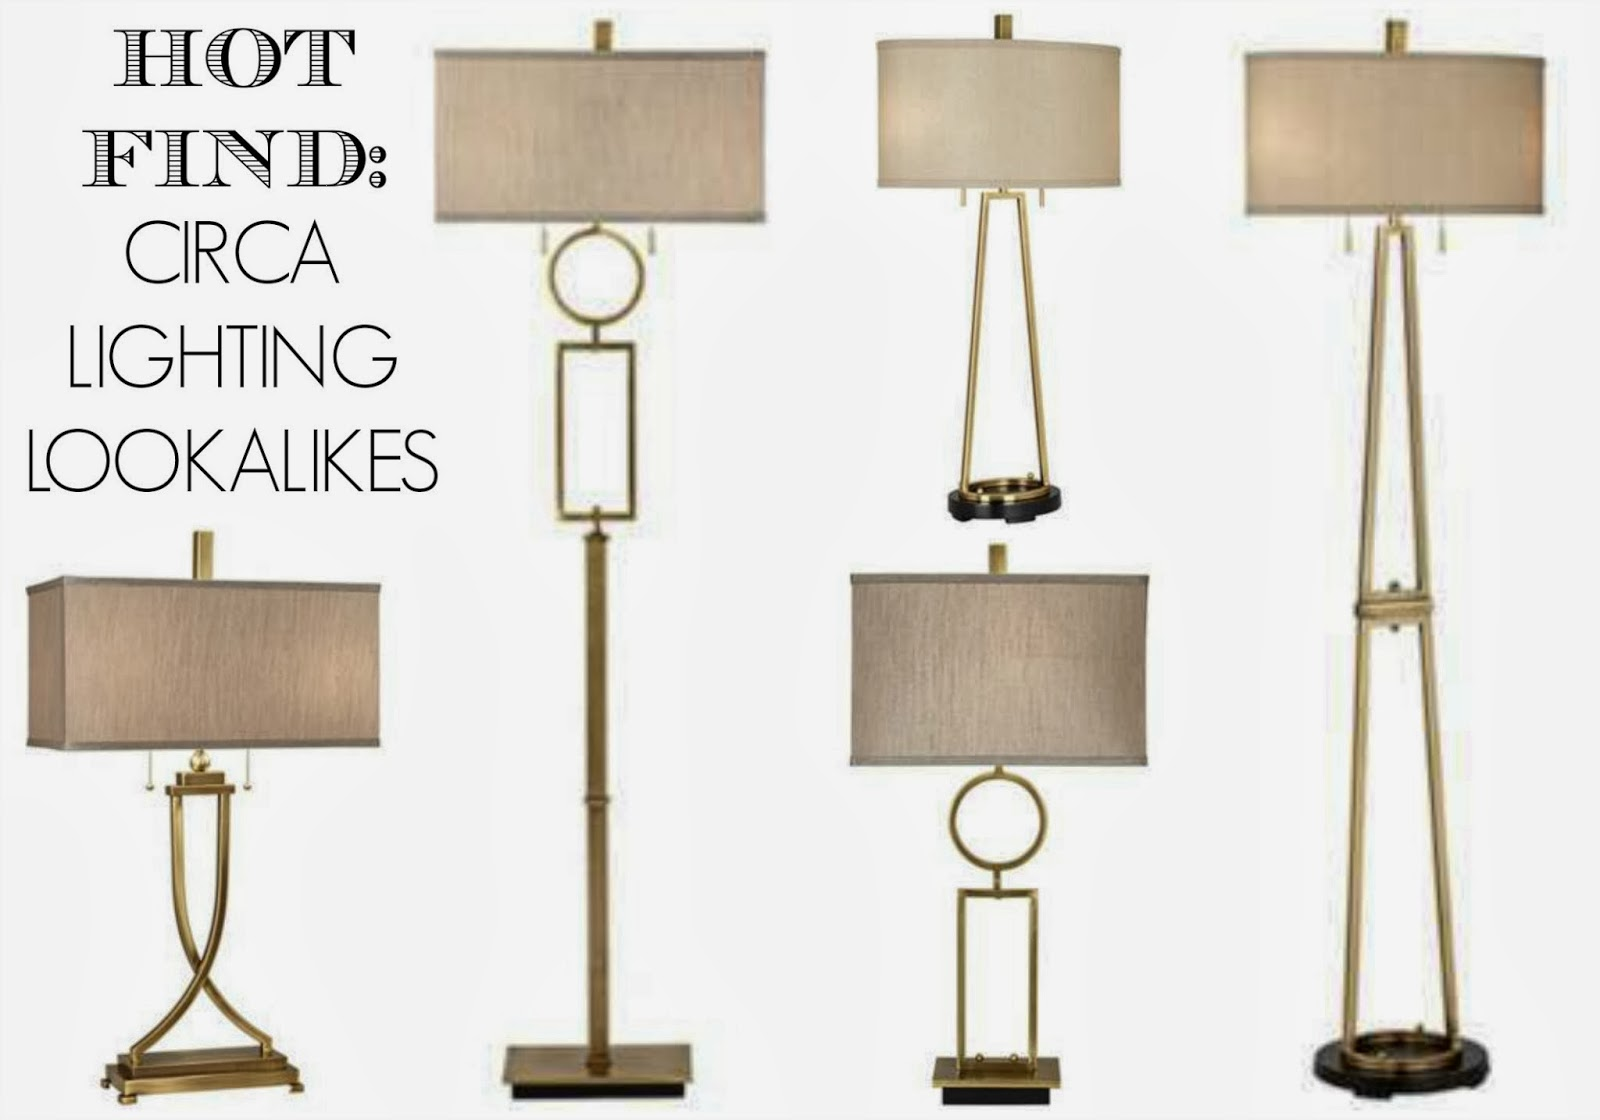 http://rosabeltrandesign.blogspot.com/2014/02/circa-lighting-look-alike-lamp-bargains.html